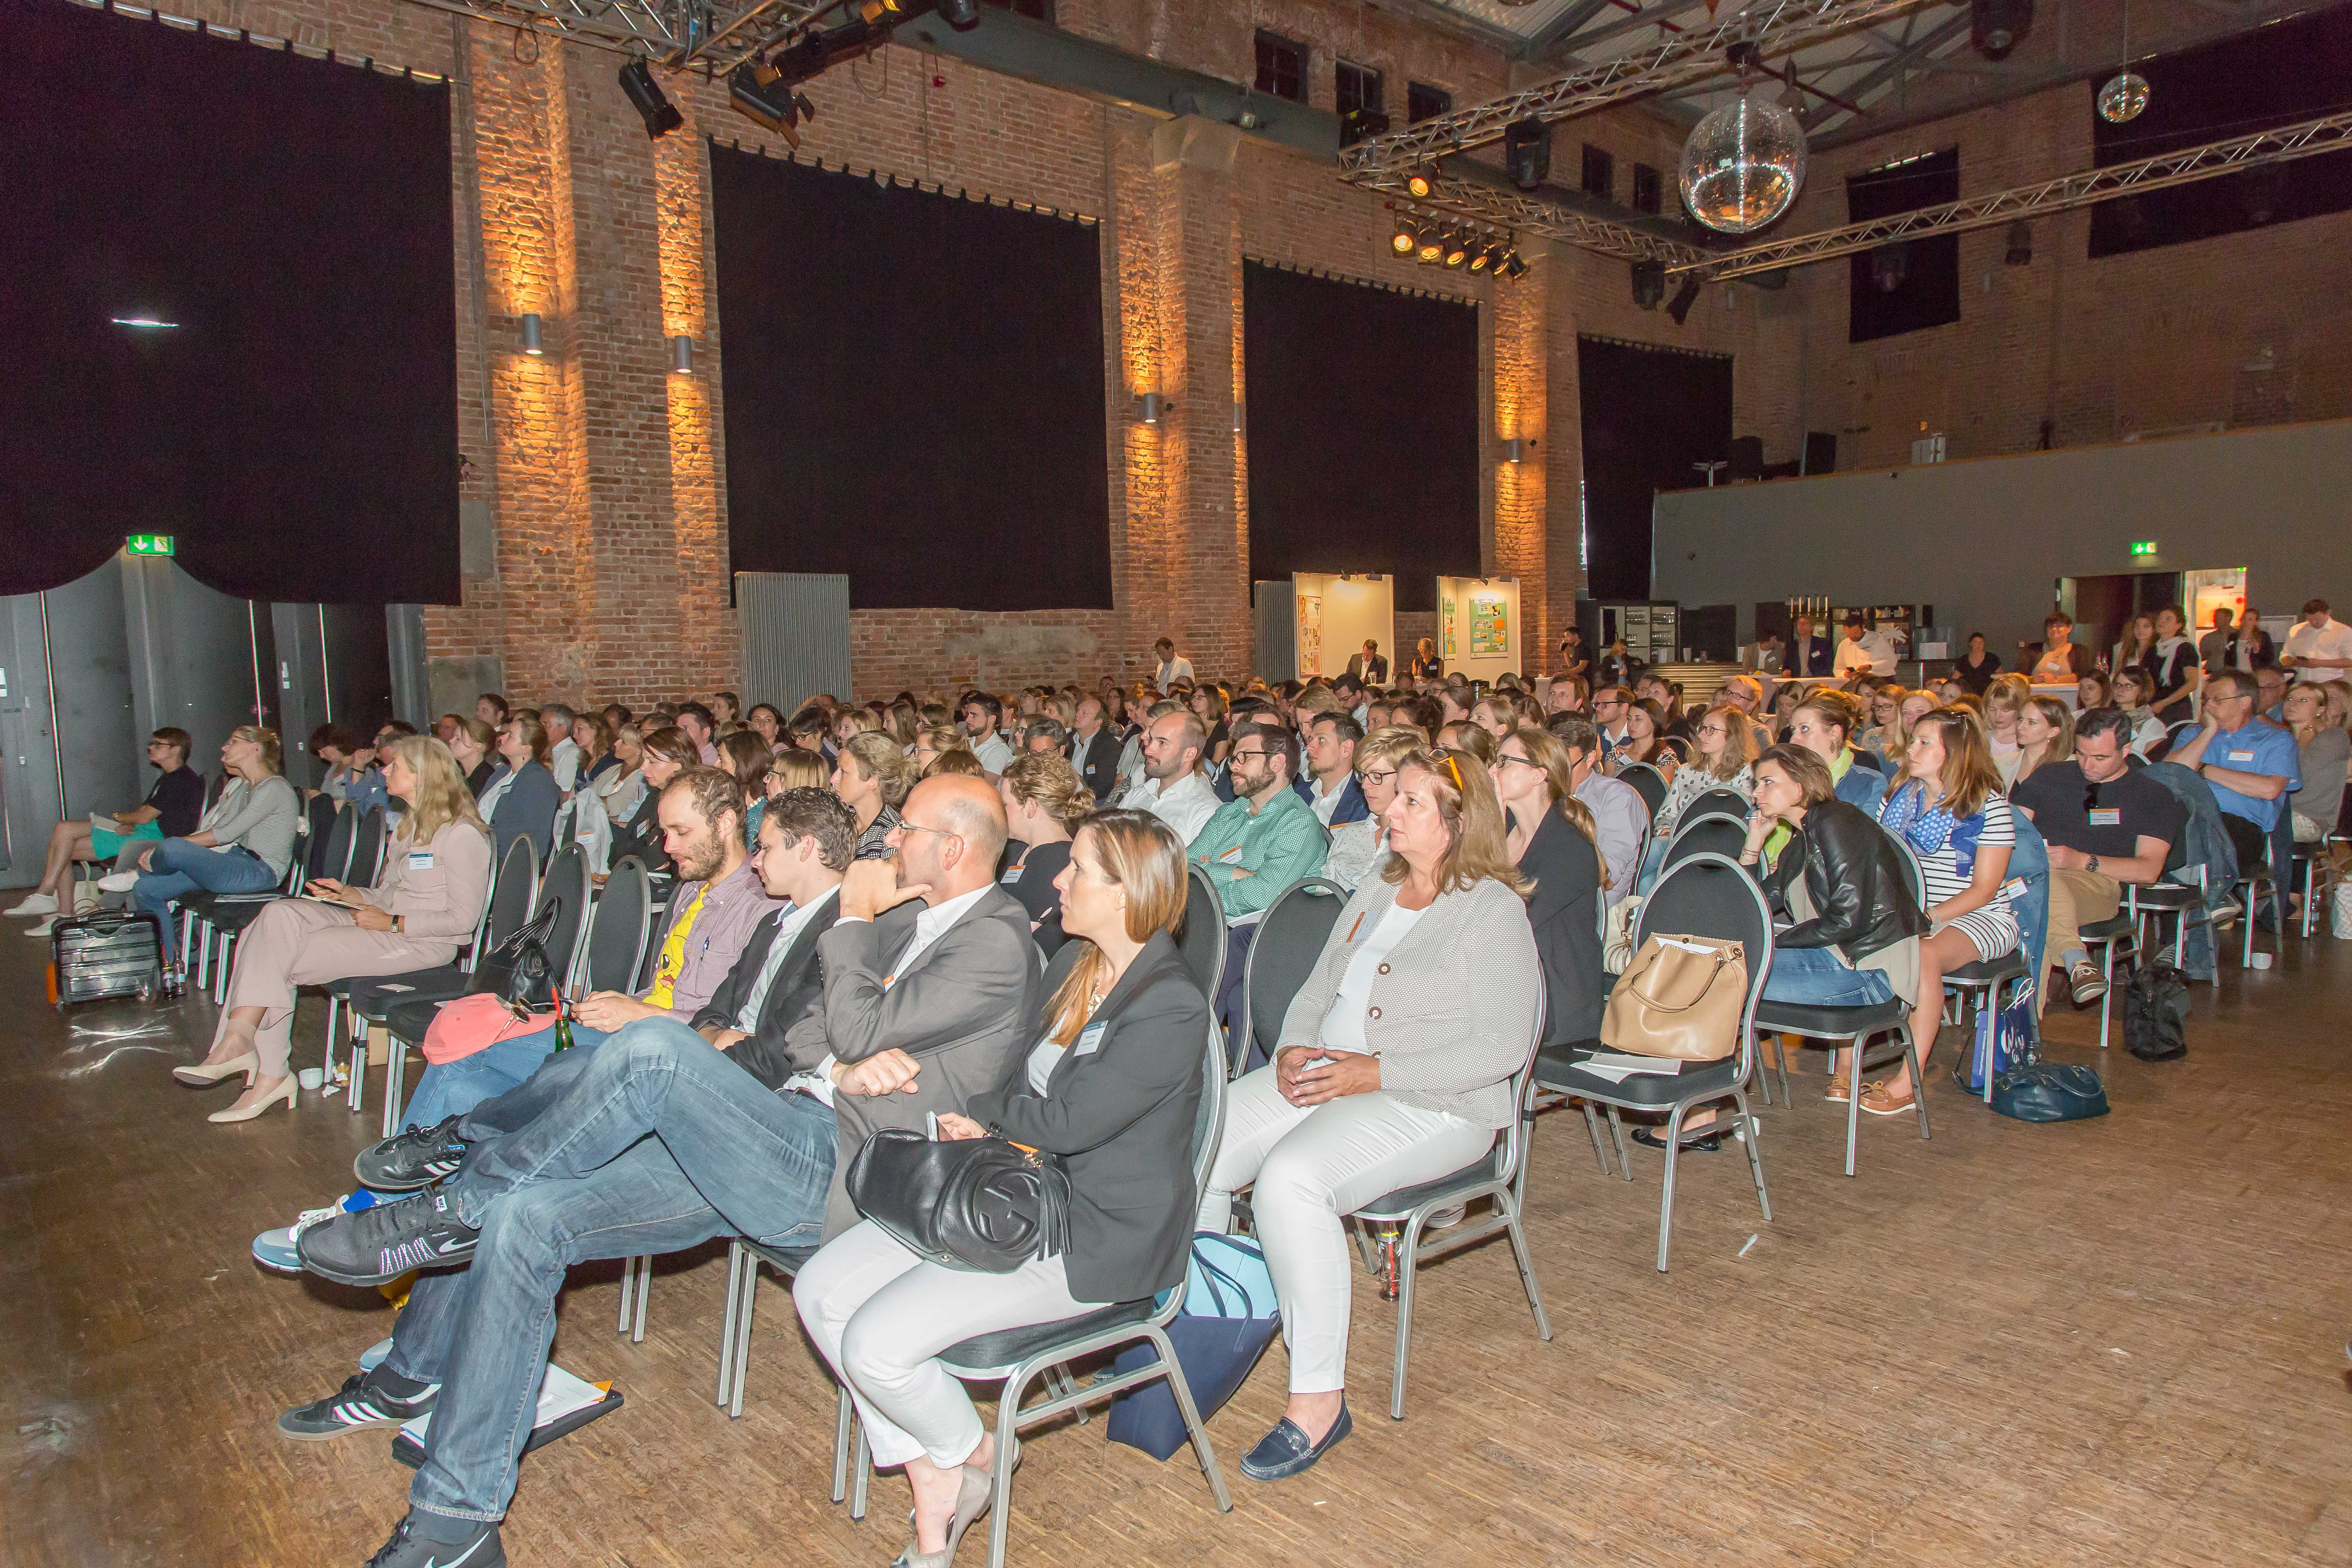 Attendees of the Iconkids & Youth congress in Munich.